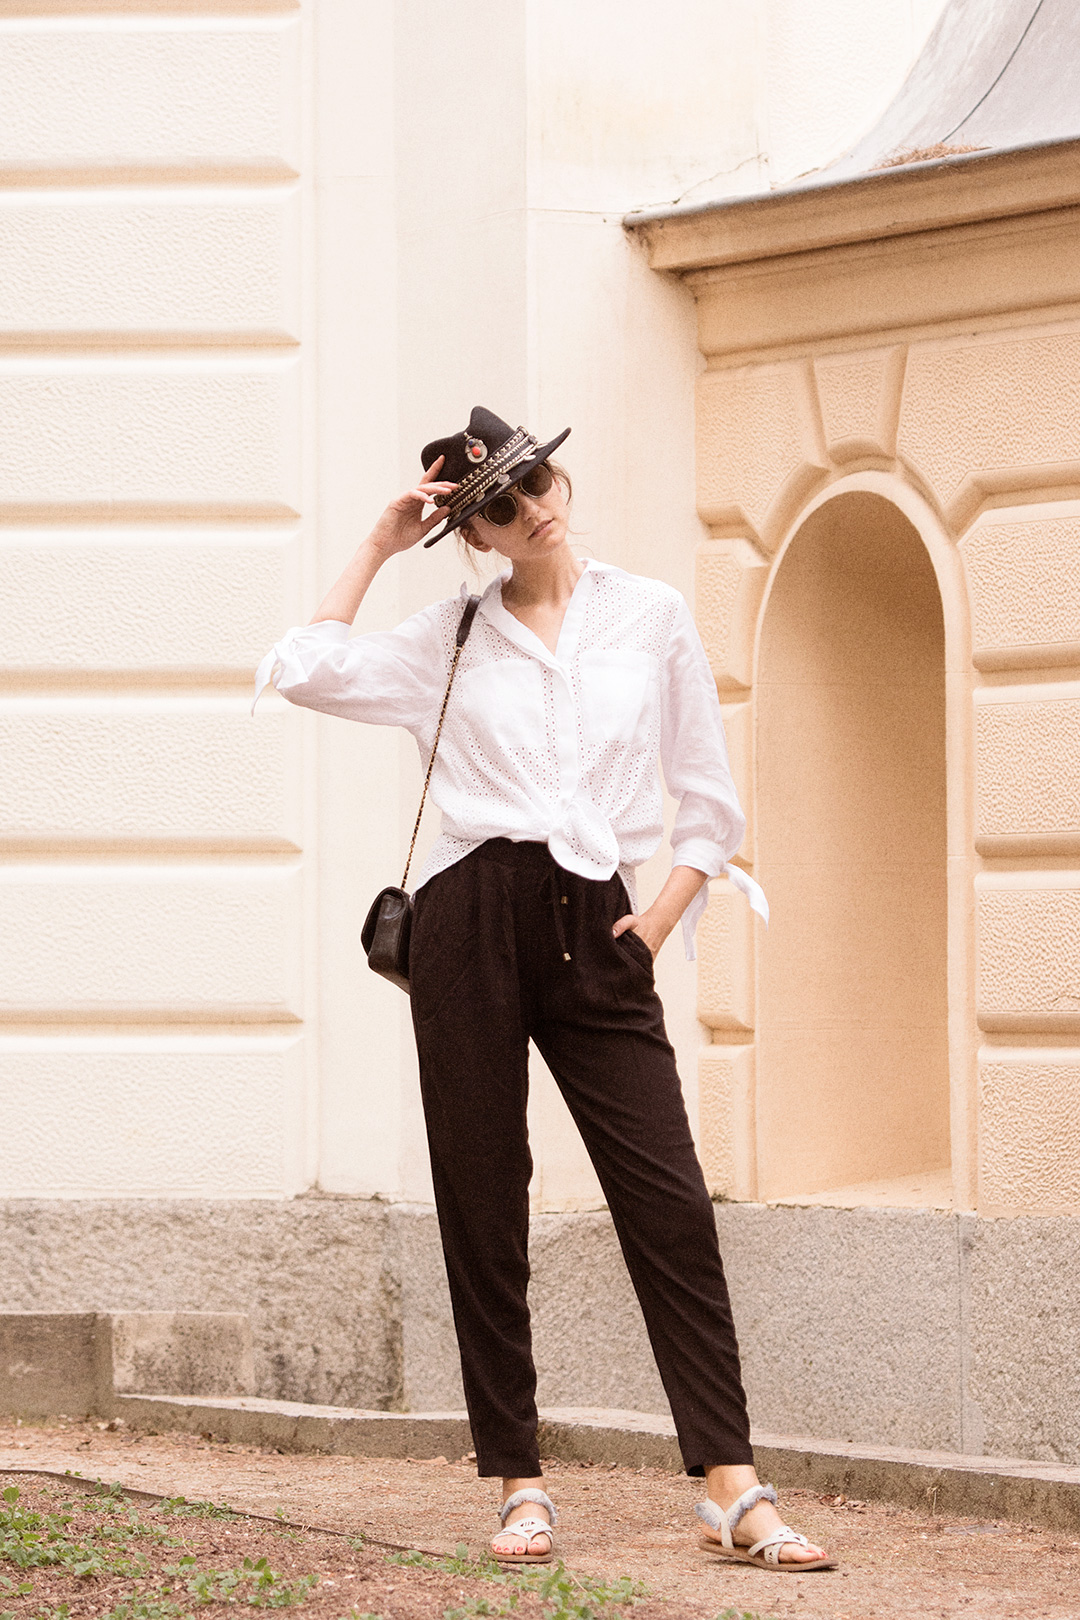 lidl-morocco-mitme-street-style-color-web-02